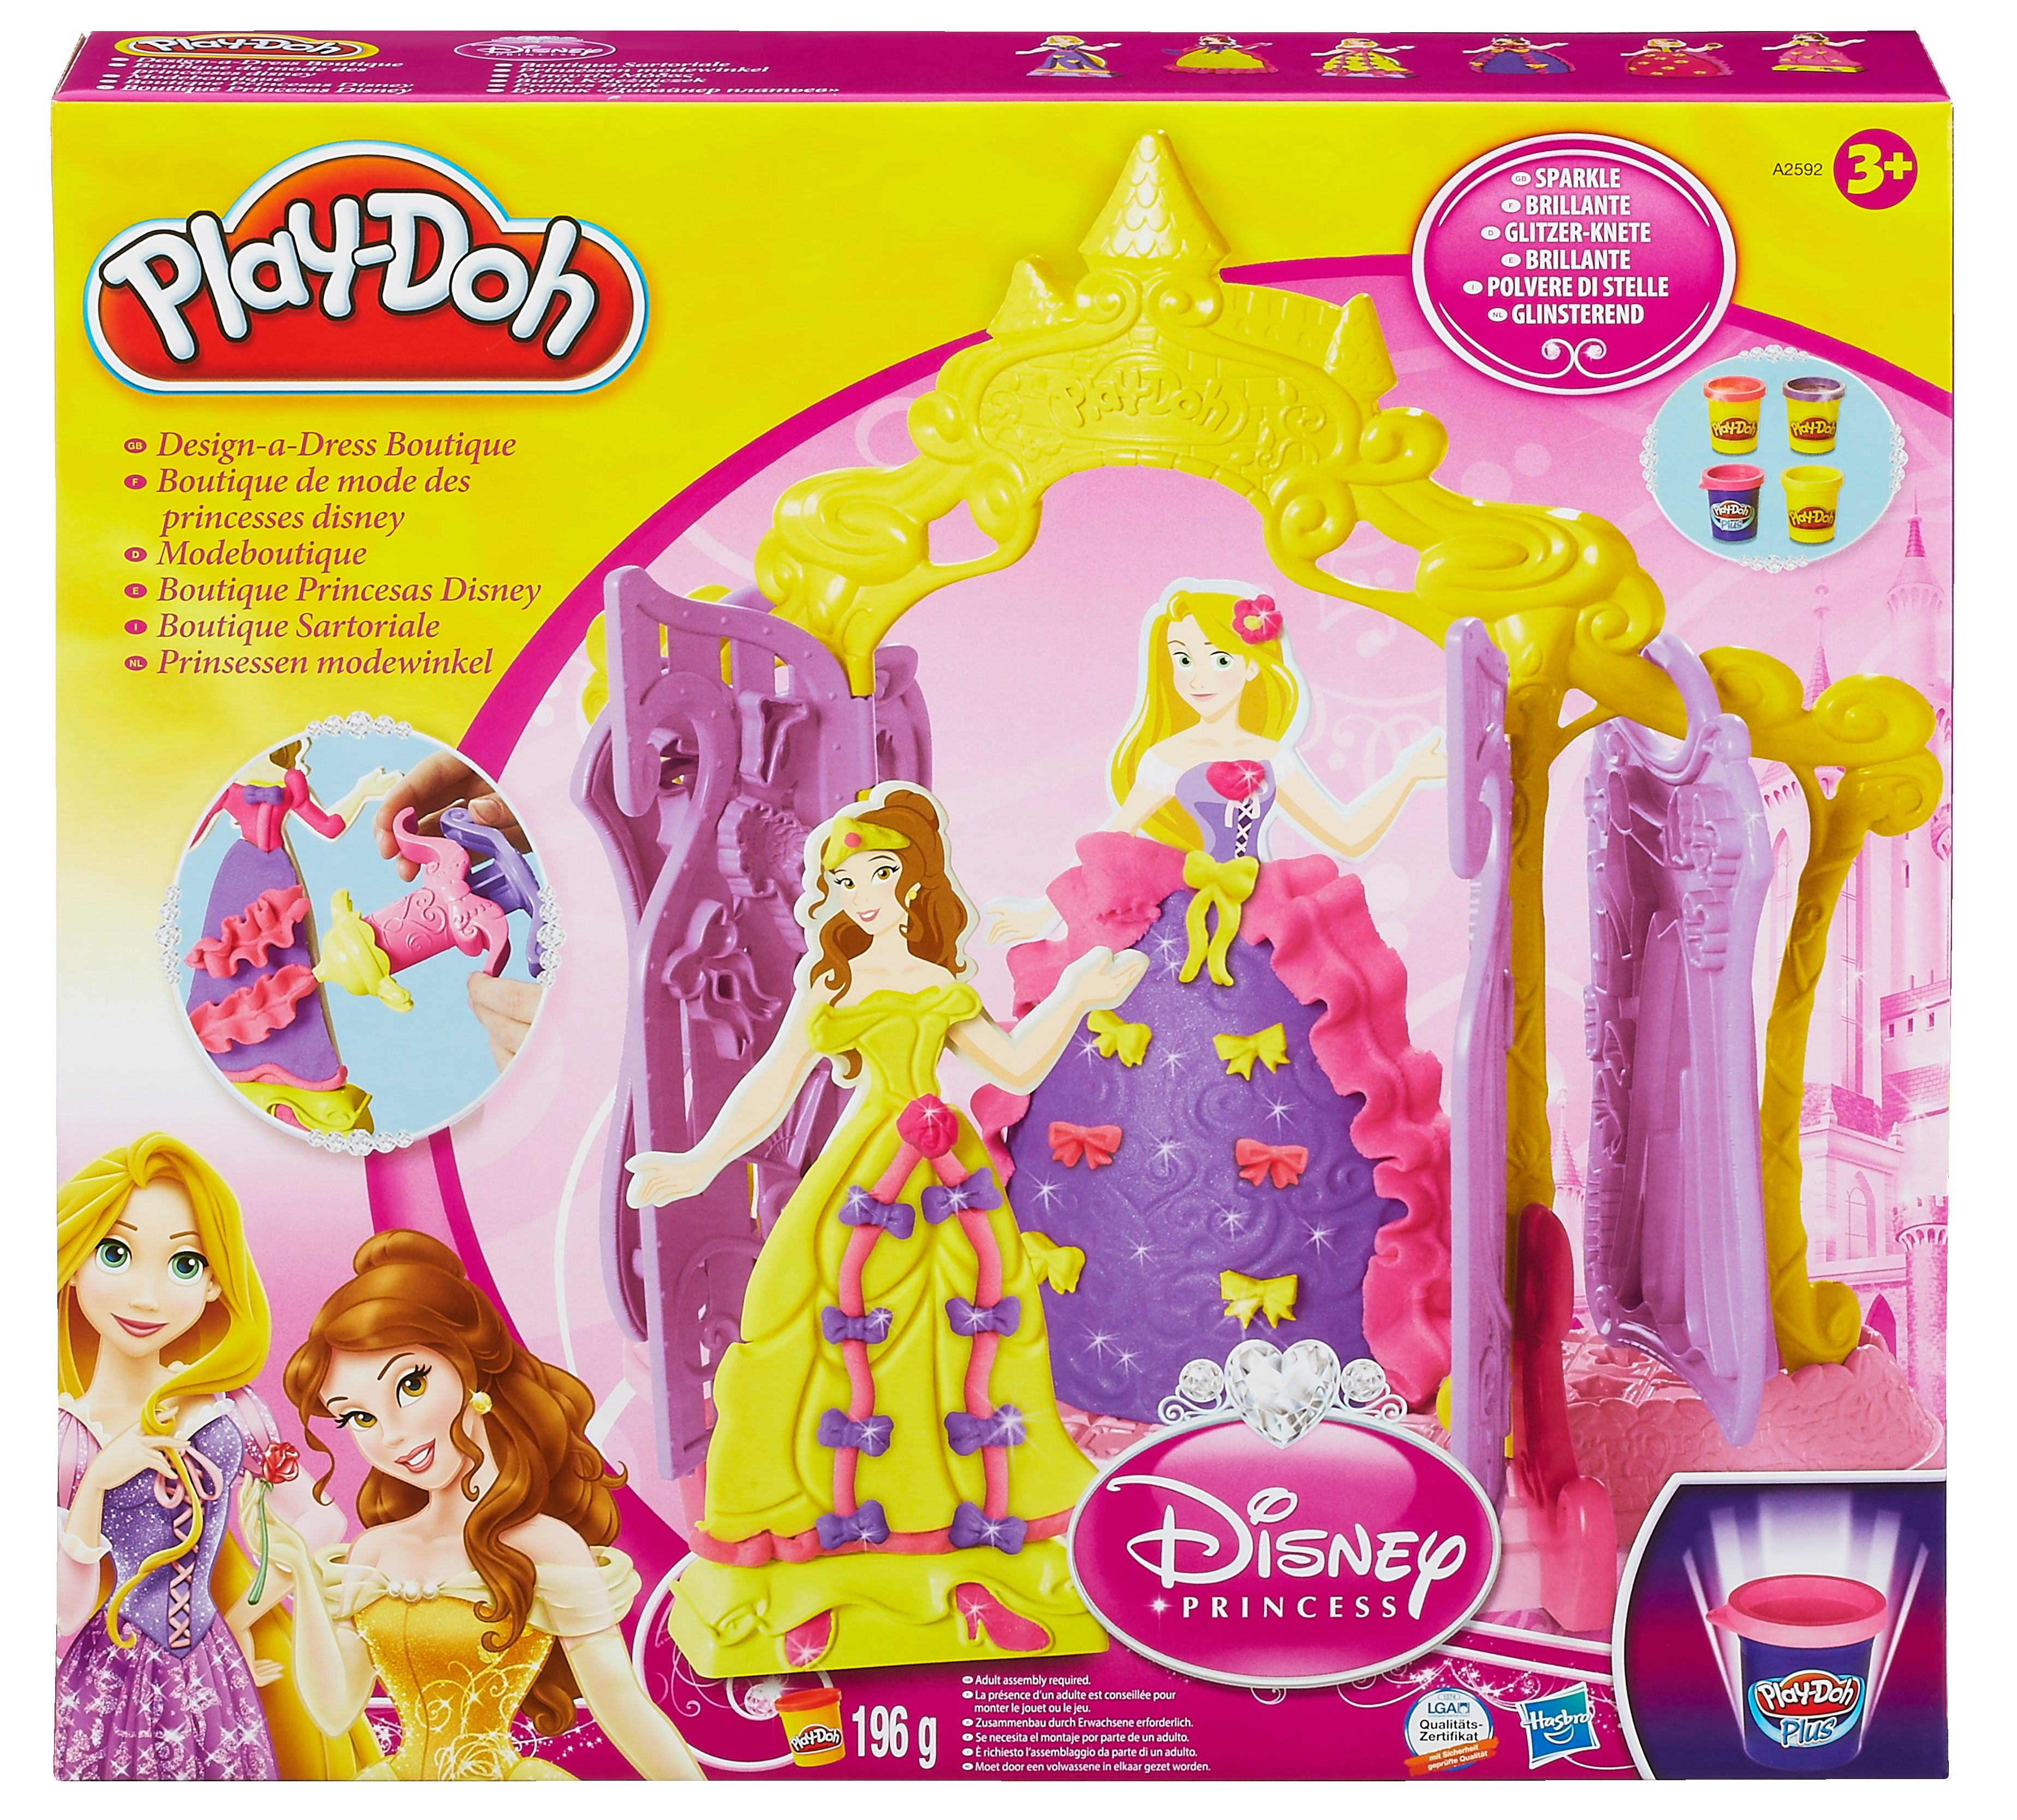 Play Doh Design A Dress Boutique